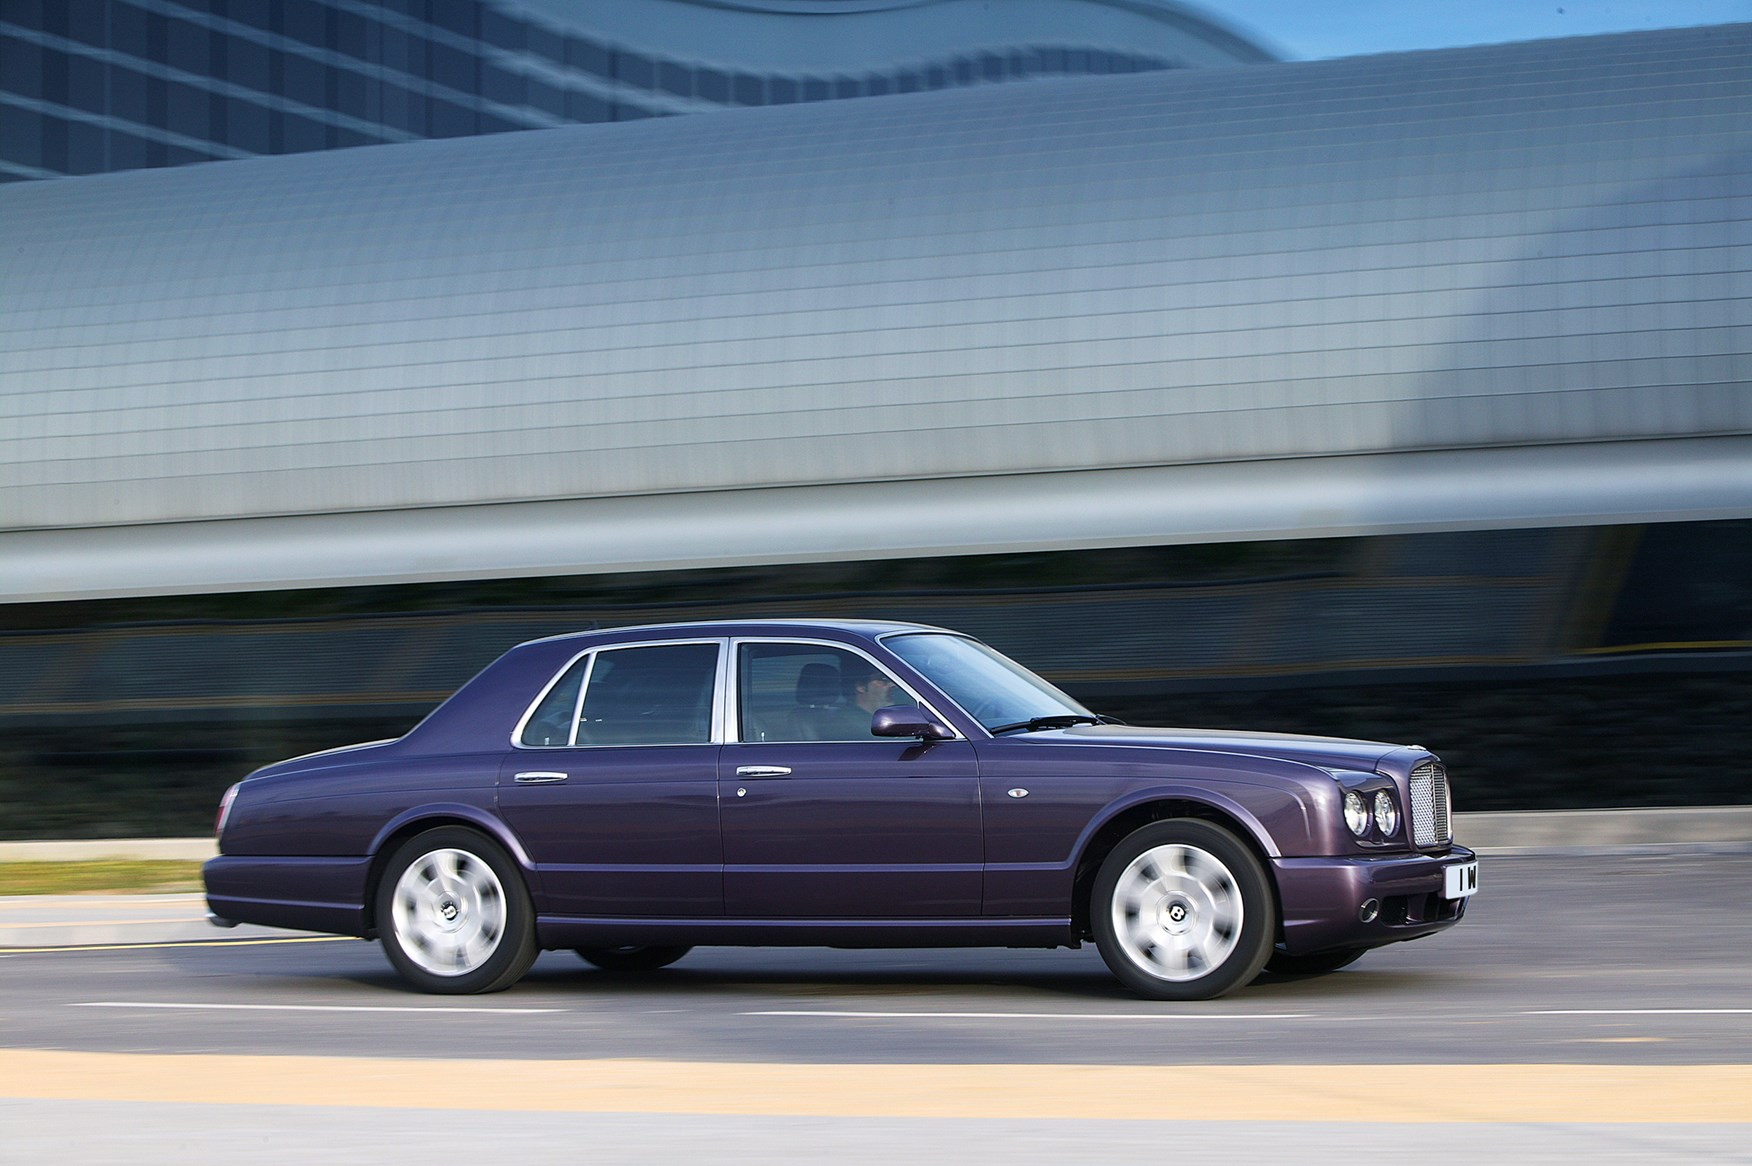 2005 bentley arnage t images hd cars wallpaper bentley arnage saloon review 1998 2009 parkers vanachro images vanachro Images